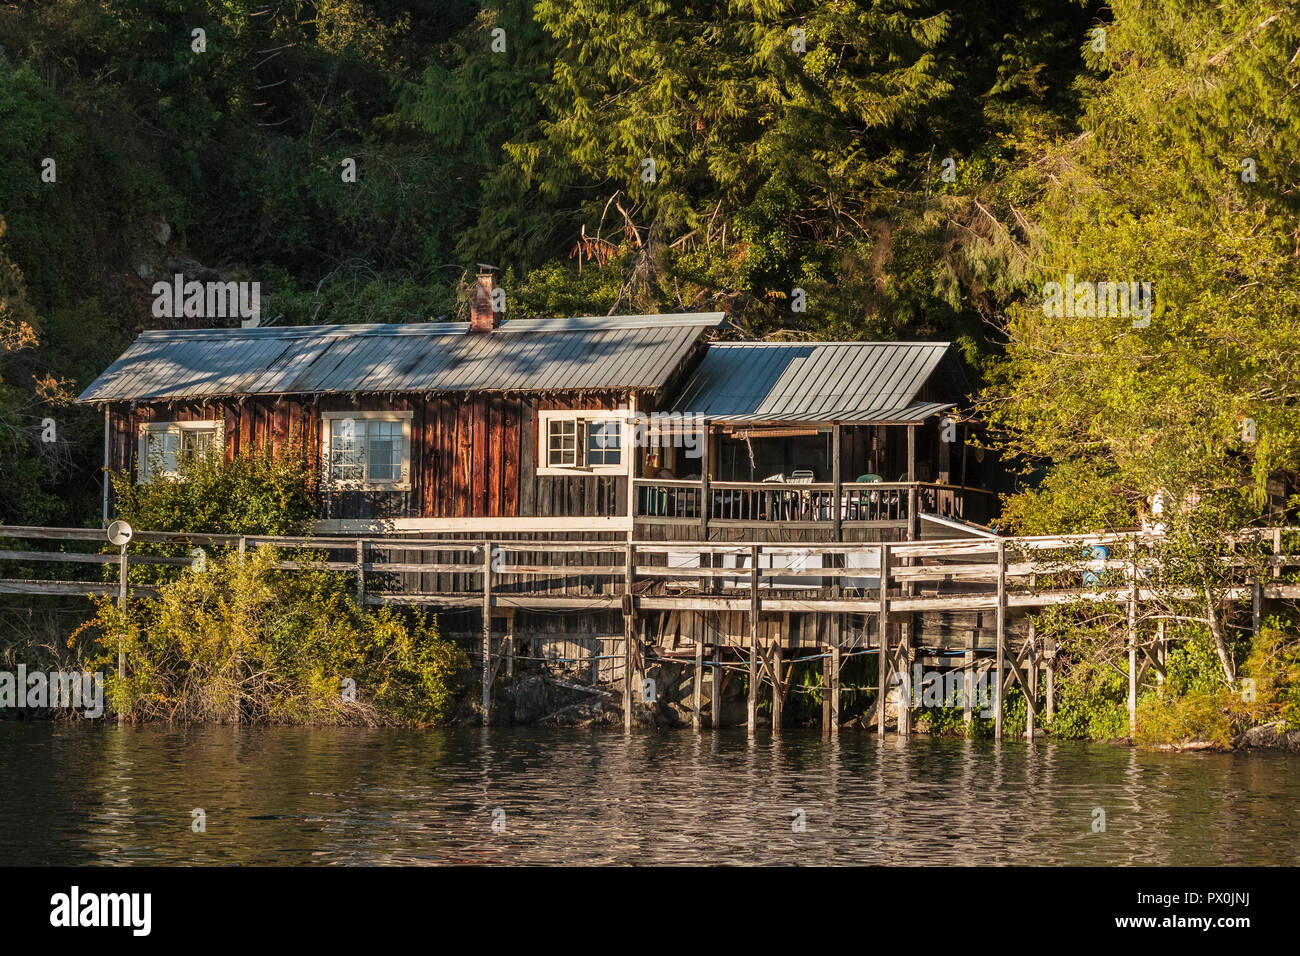 On a quiet summer evening in coastal British Columbia, golden light and shadows fall on the forest and a wooden house and boardwalk beside the water. - Stock Image